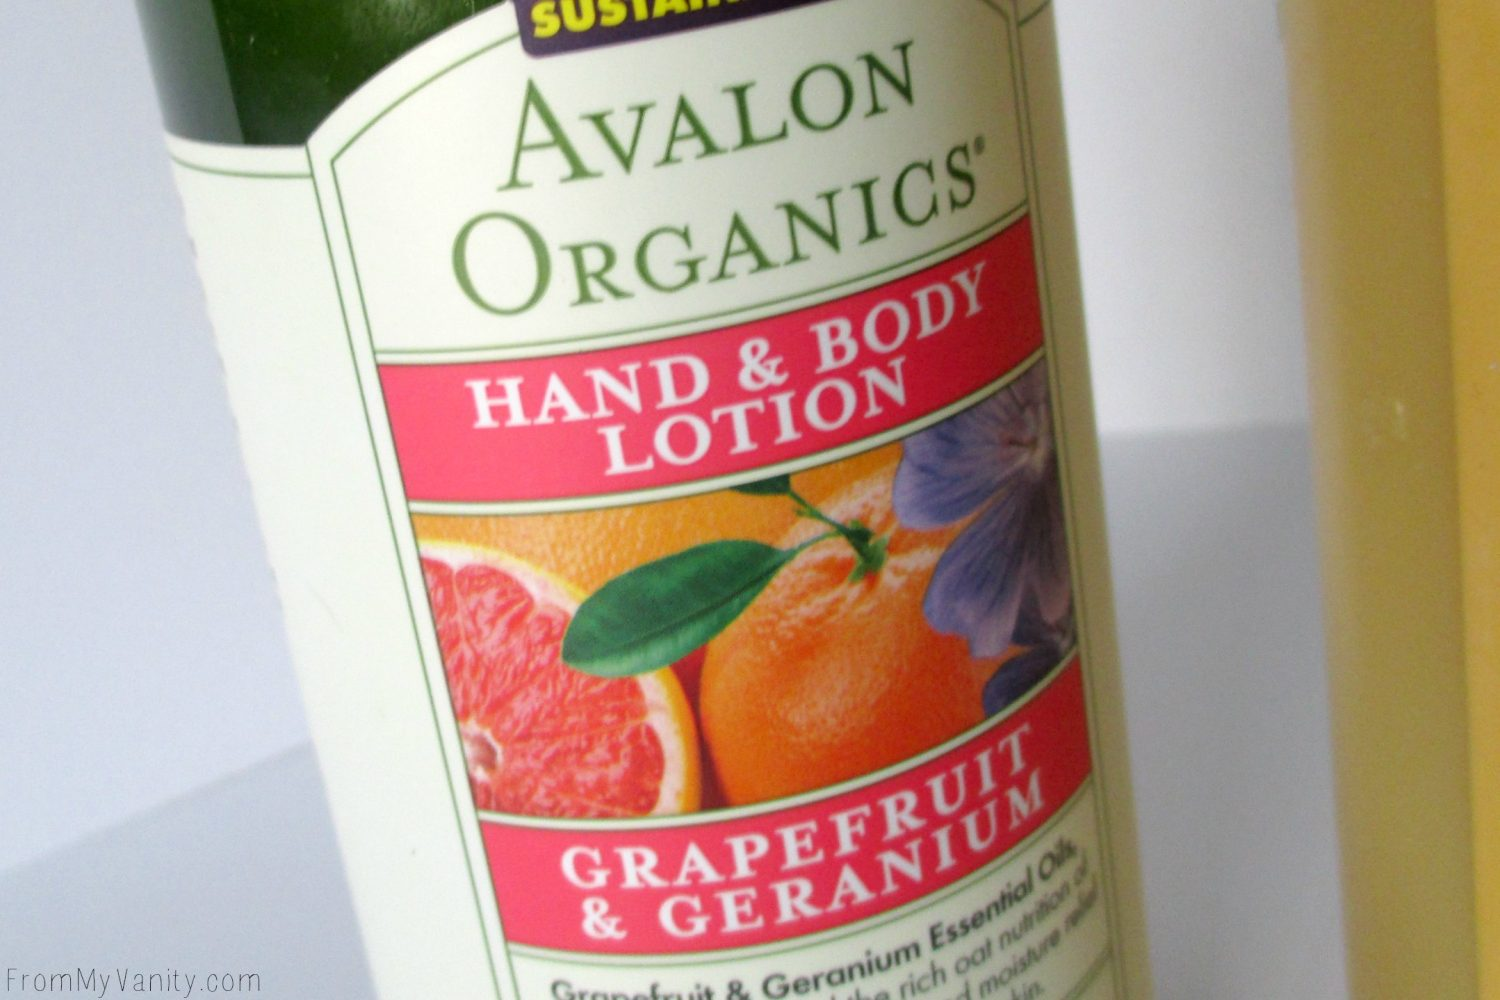 New Products from Avalon Organics, Jason, Alba Botanica, & Proactiv+ // Avalon Organics Hand & Body Lotion // @LadyKaty92 FromMyVanity.com